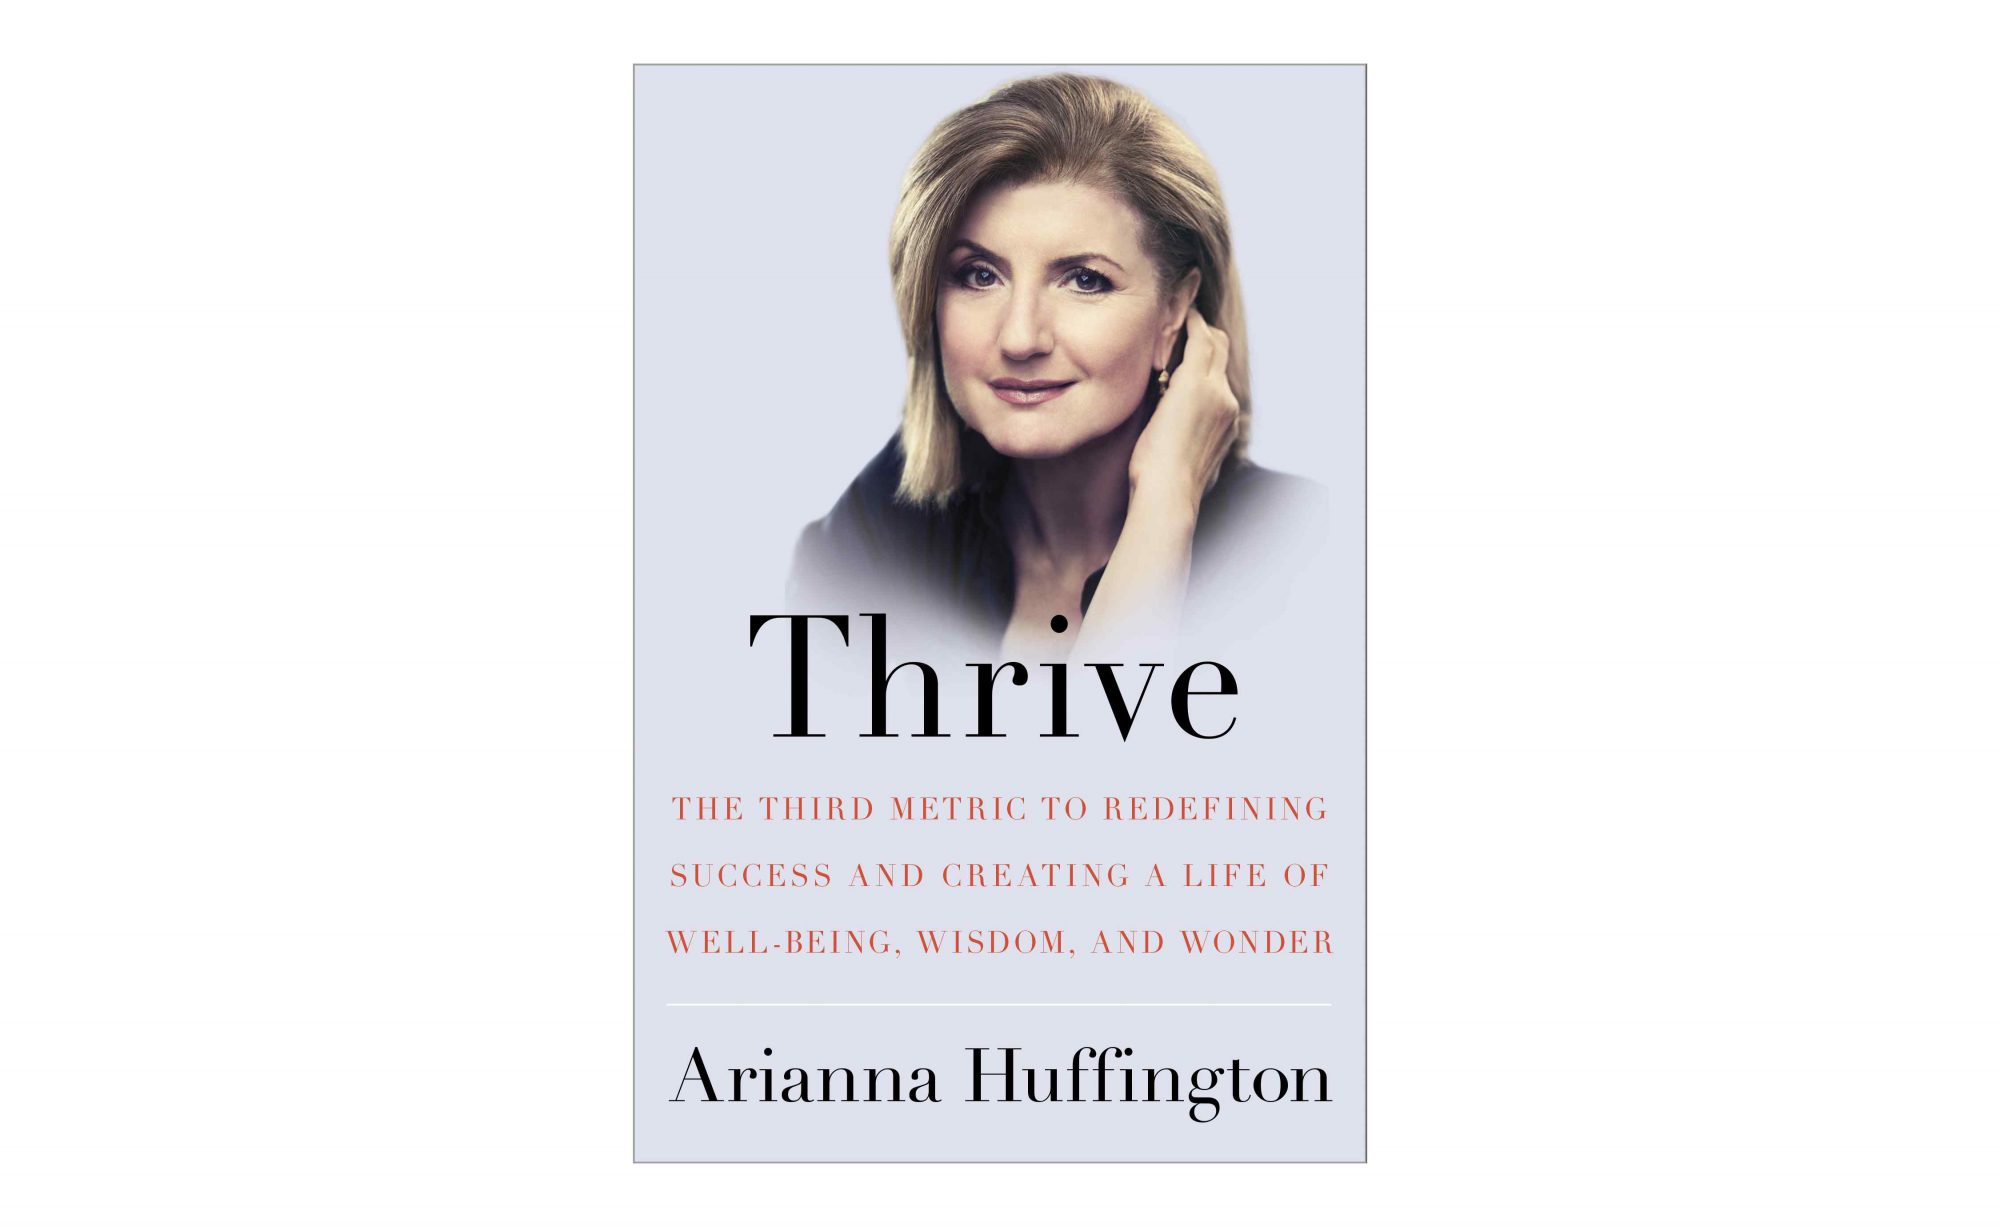 Thrive, by Ariana Huffington